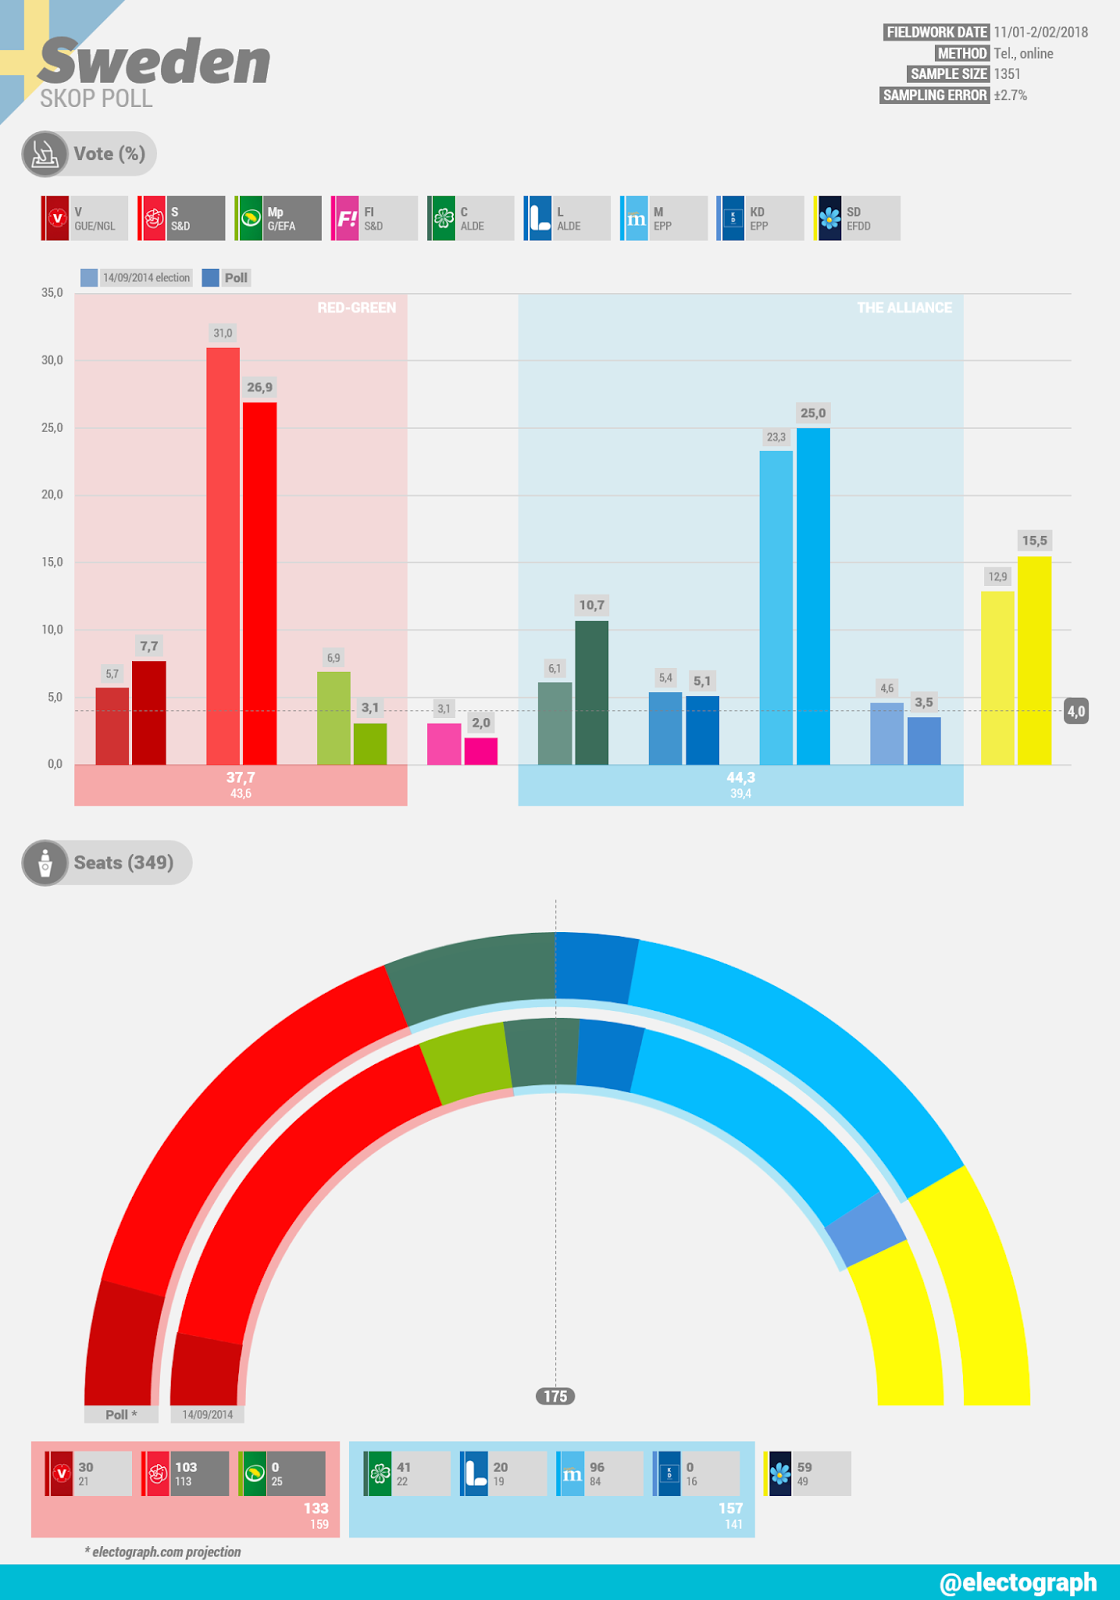 SWEDEN Skop poll chart, February 2018